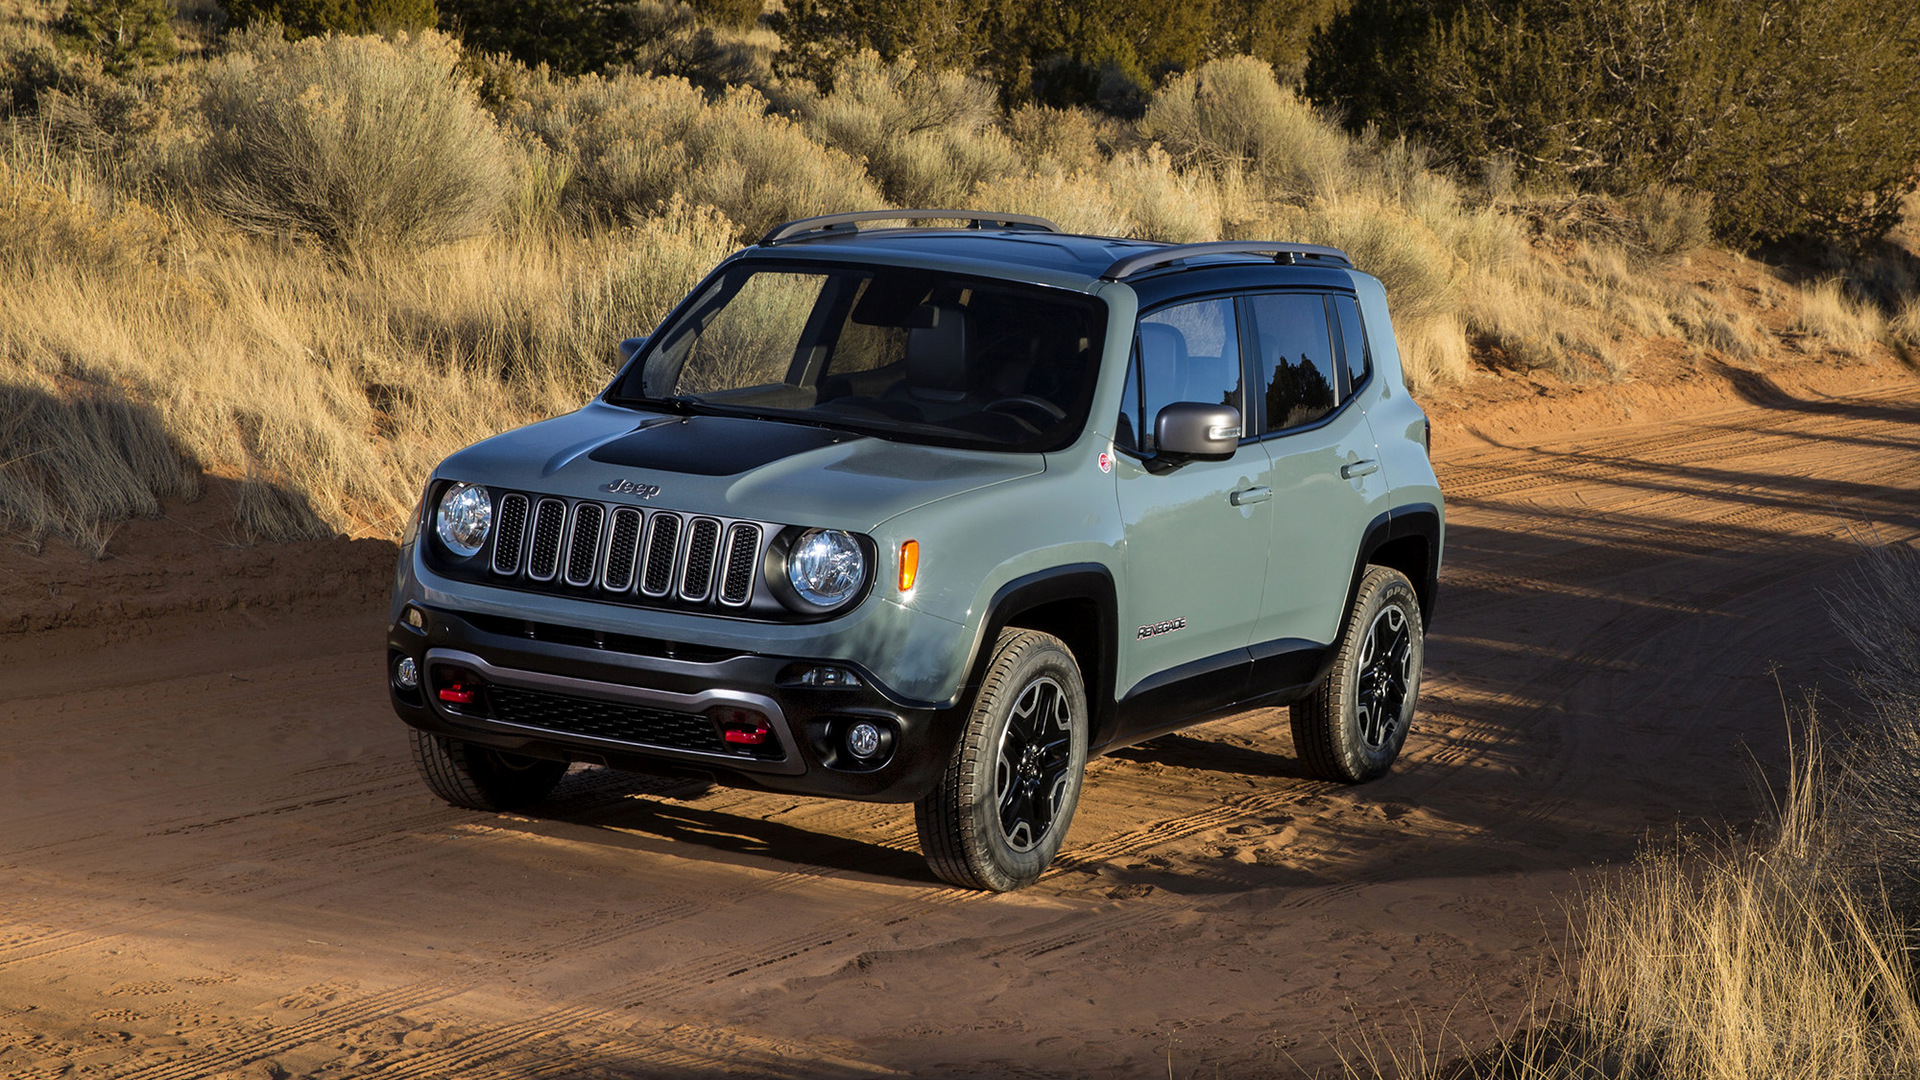 Jeep Renegade Trailhawk (2015) Wallpapers and HD Images ...